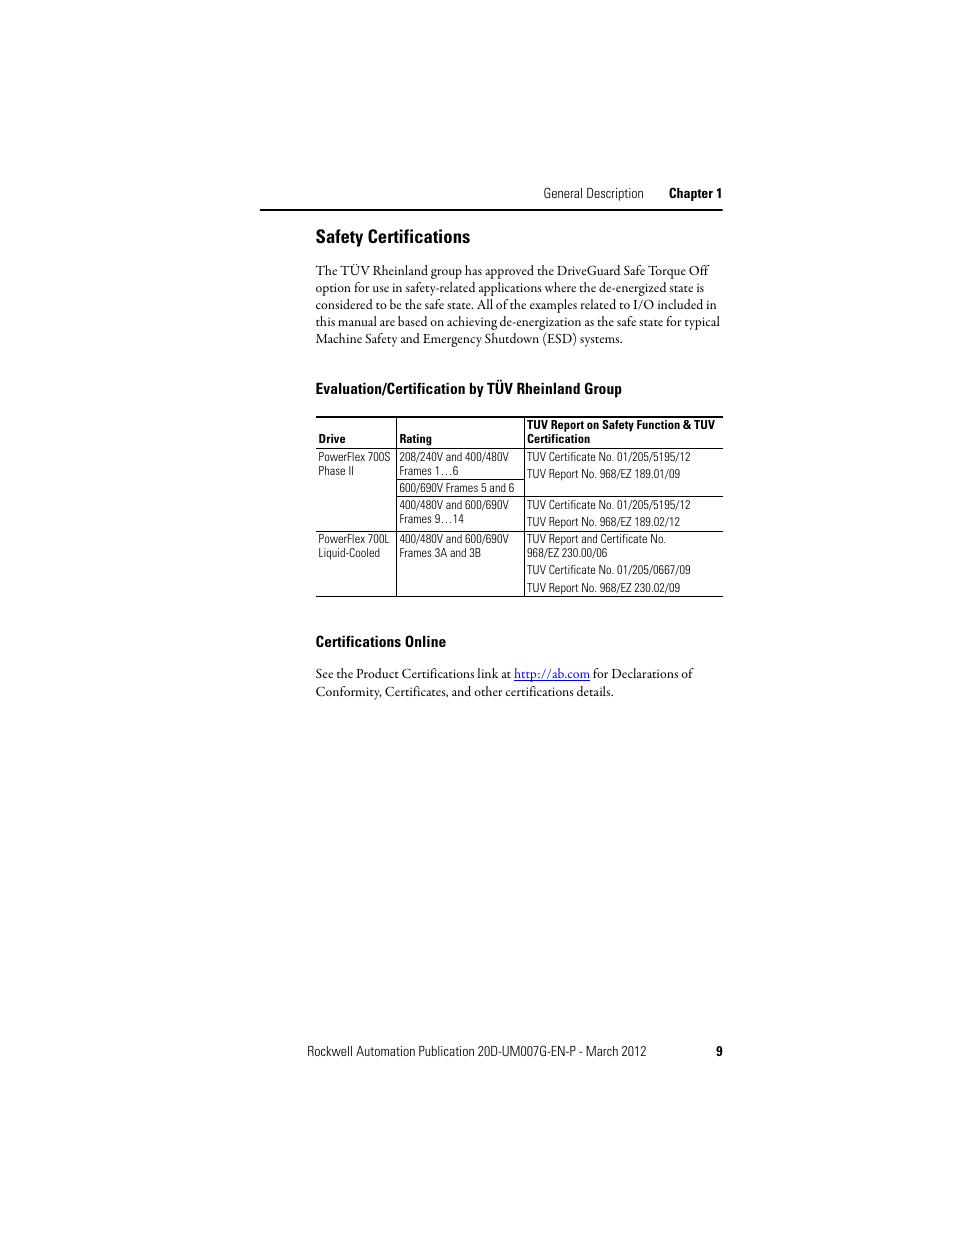 Safety Certifications Evaluationcertification By Tv Rheinland